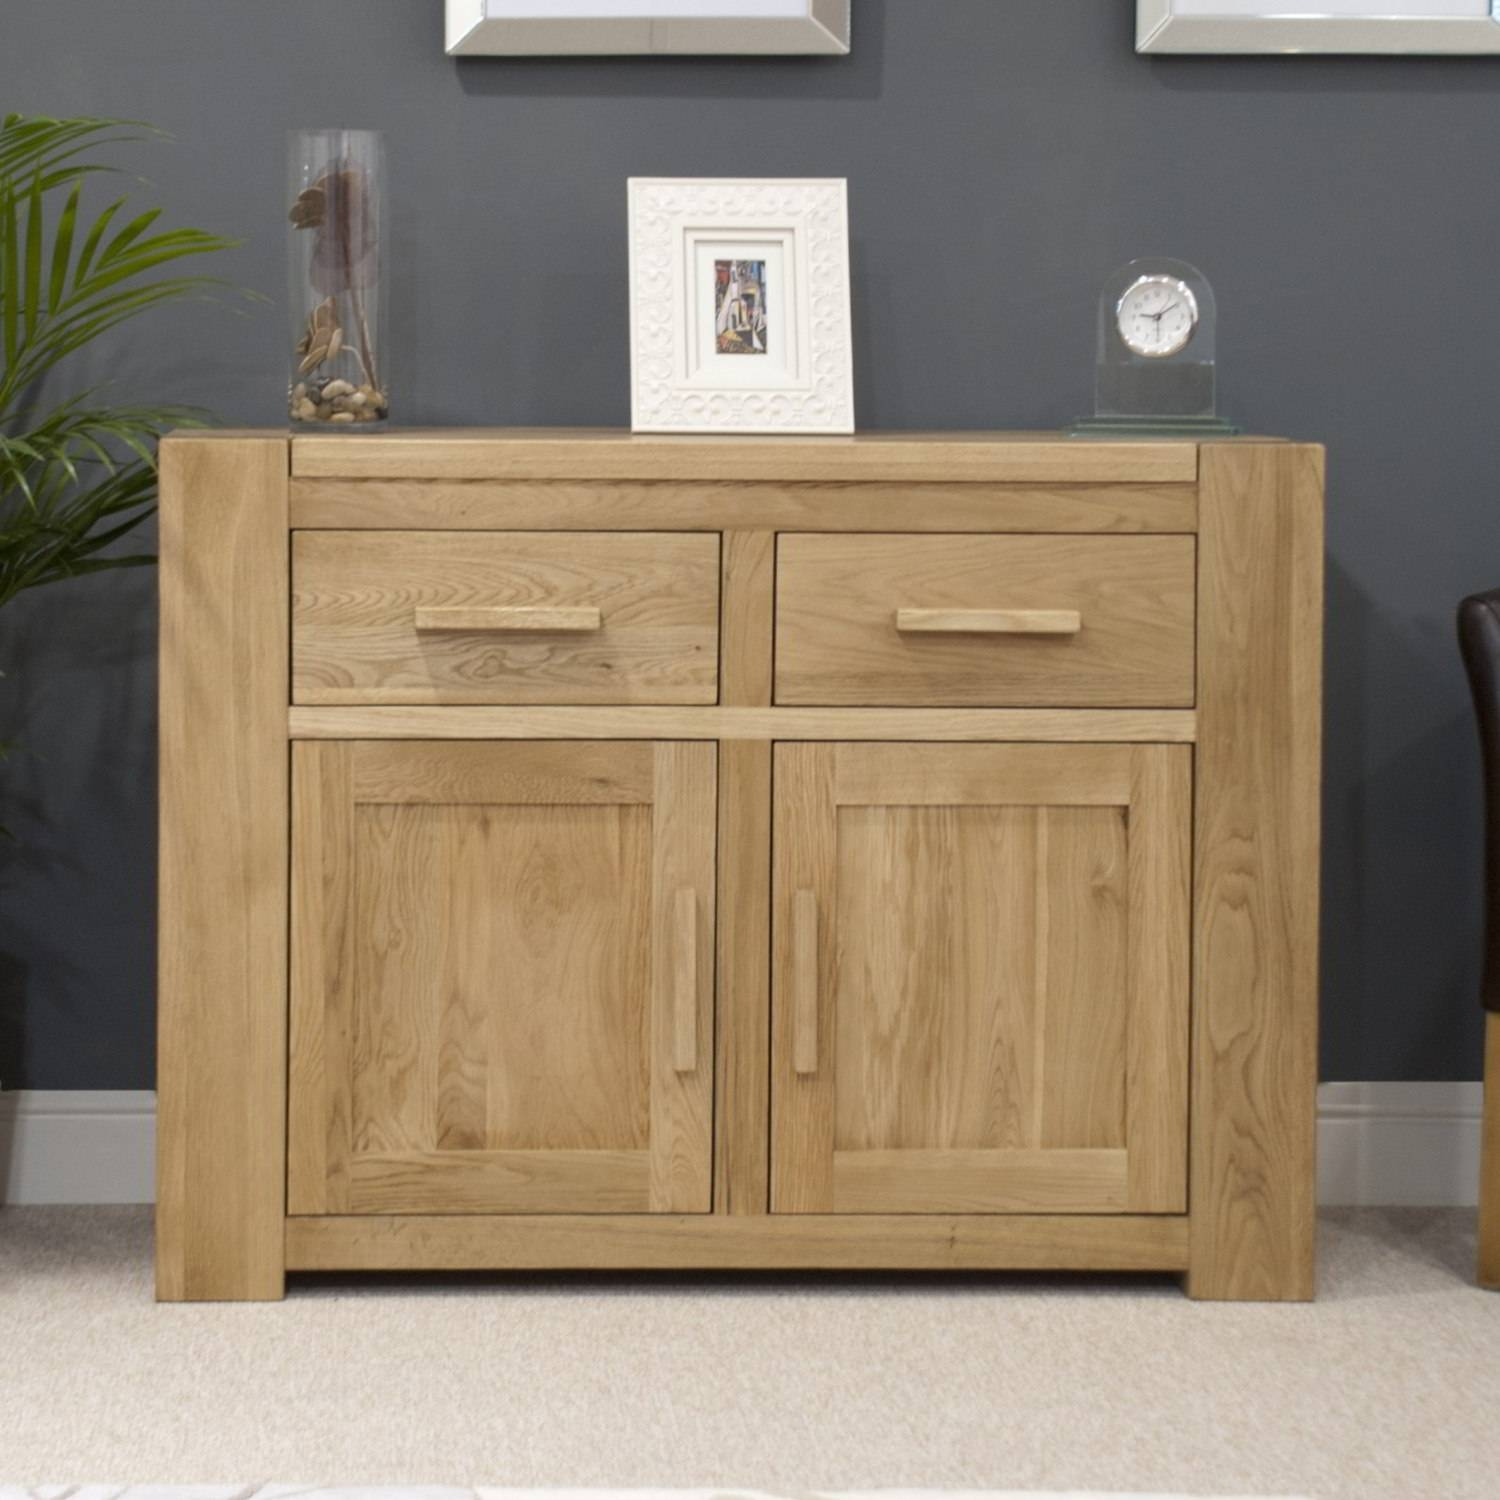 Pemberton Solid Oak Living Room Furniture Medium Storage Sideboard with regard to Oak Sideboards for Sale (Image 13 of 30)